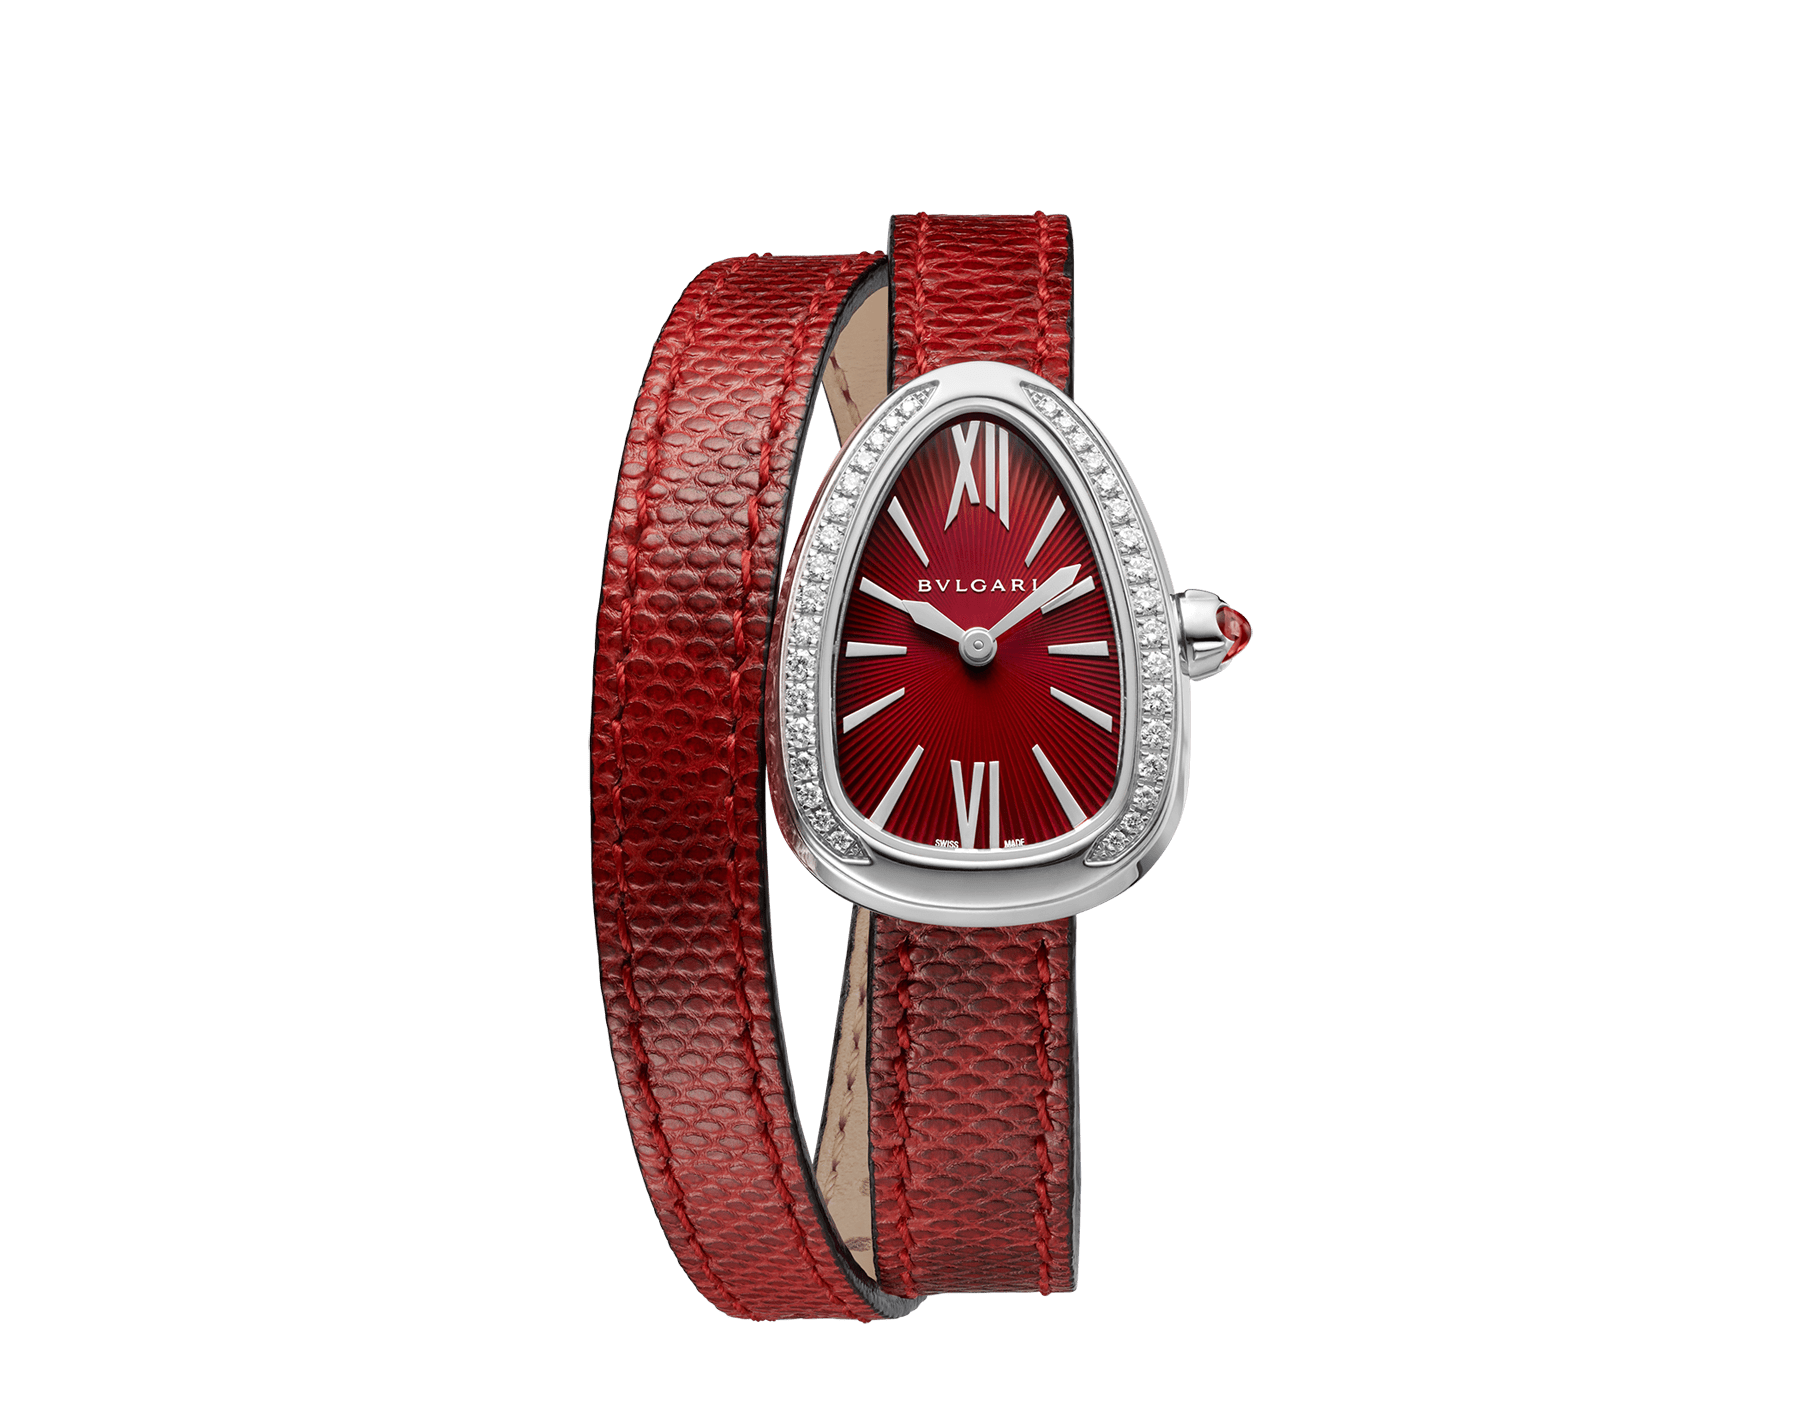 Serpenti watch with stainless steel case set with diamonds, red lacquered dial and interchangeable double spiral bracelet in red karung leather. 102780 image 1